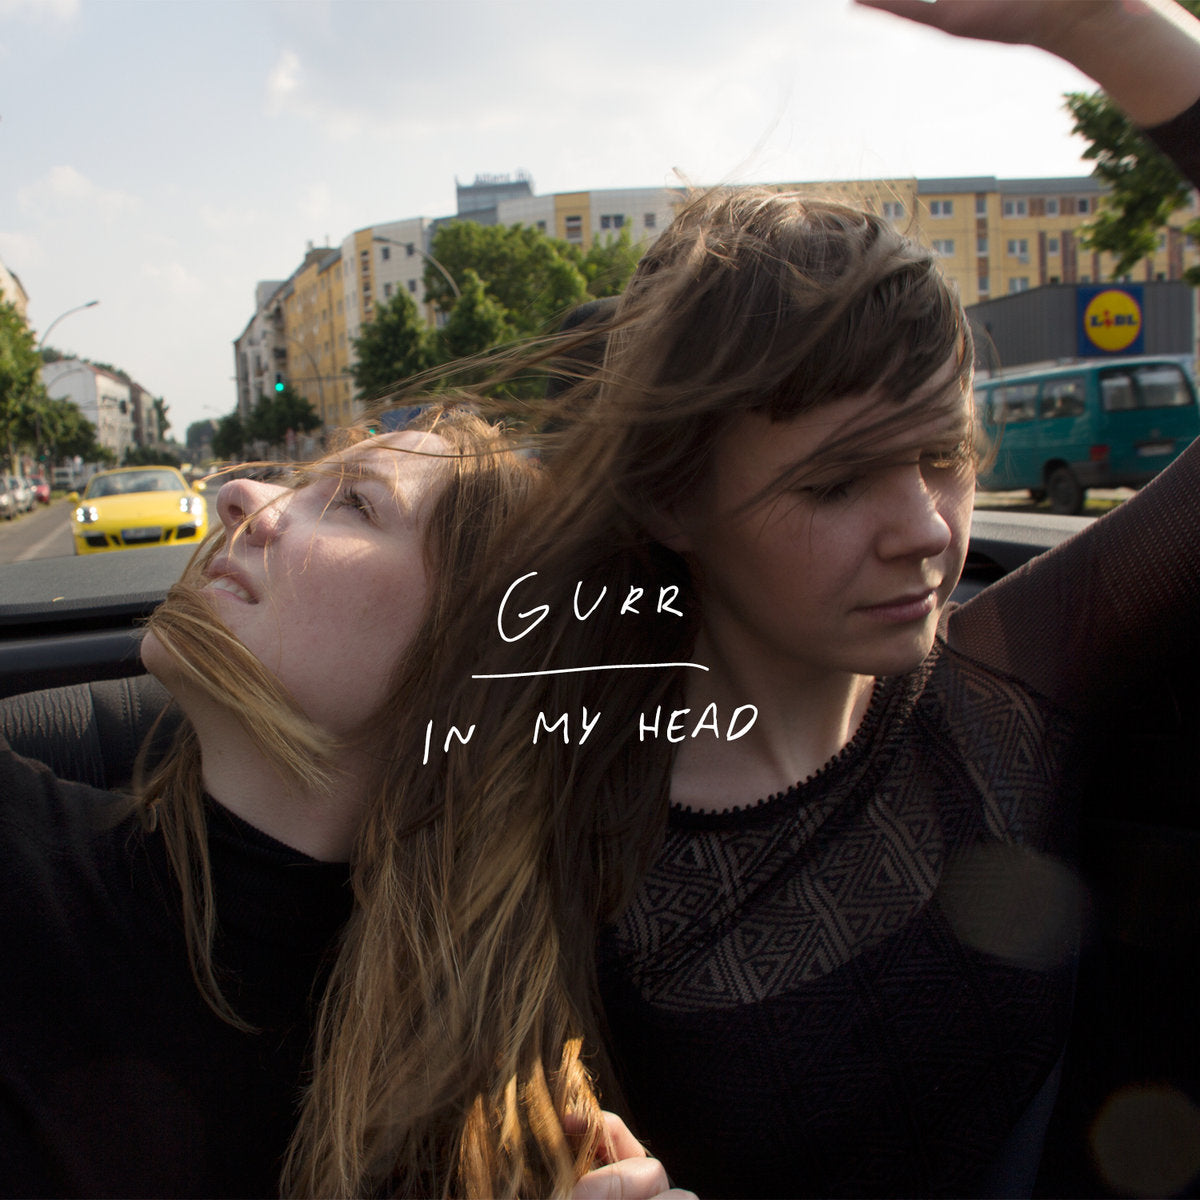 Gurr - In My Head LP - Vinyl